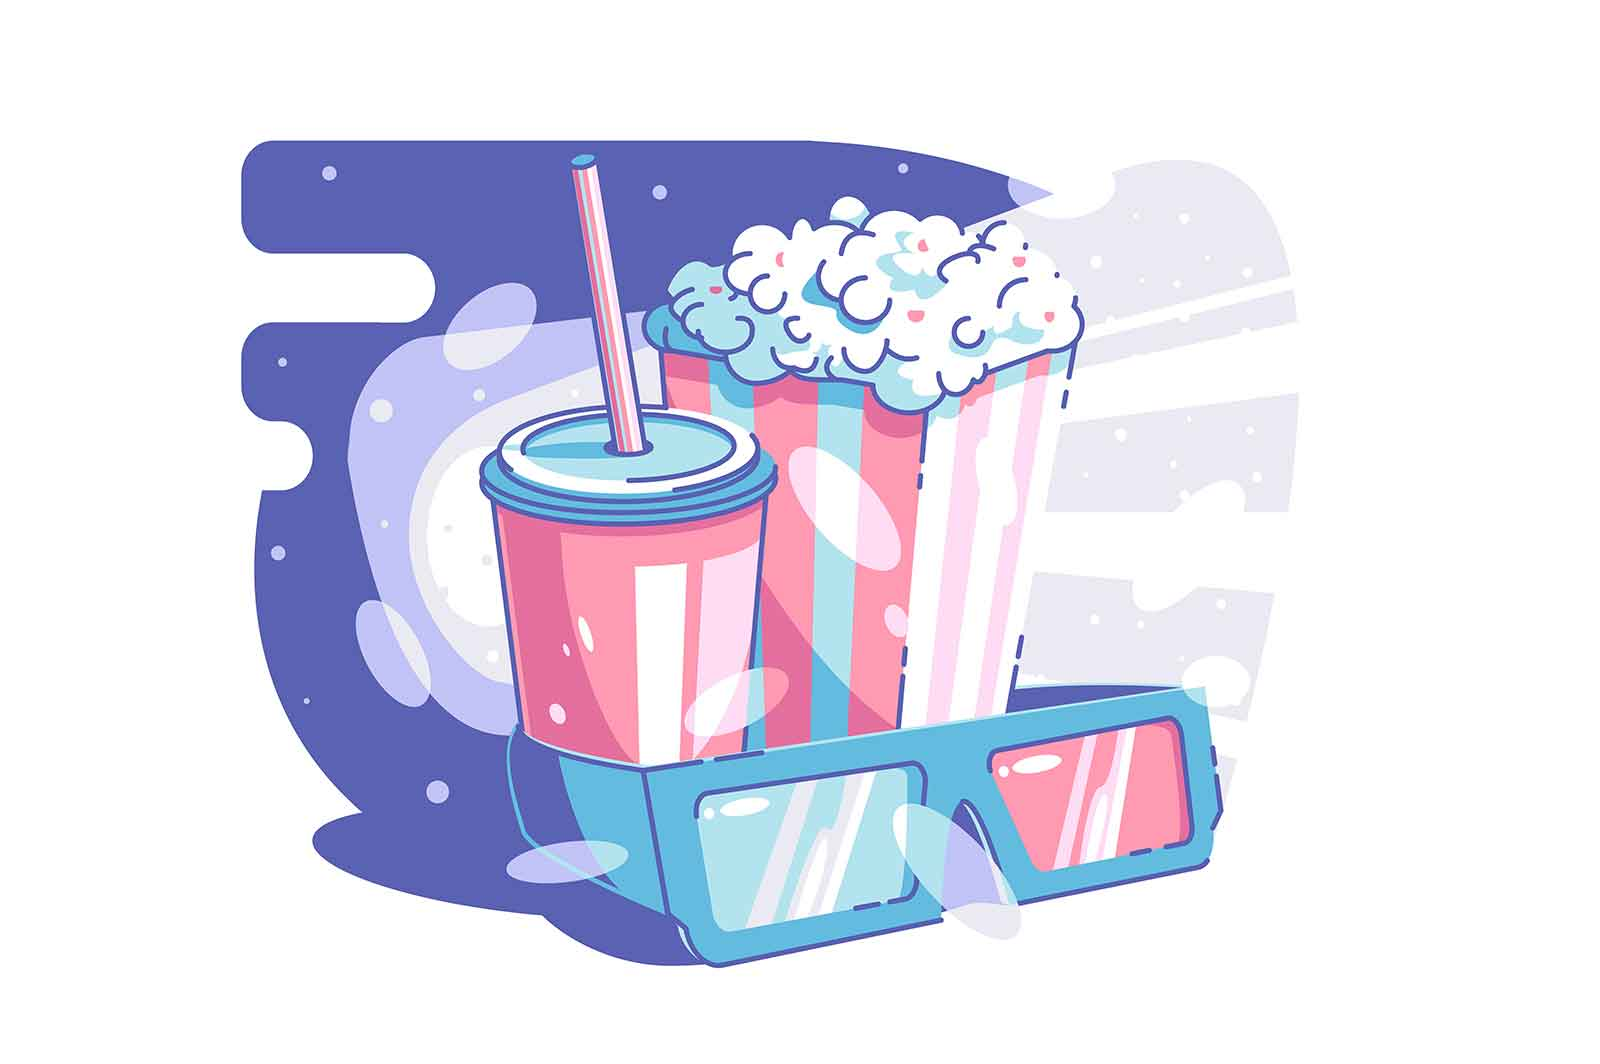 Cinema and snack time vector illustration. Tasty beverage popcorn and glasses for 3d movie flat style. Leisure time and weekend concept. Isolated on white background